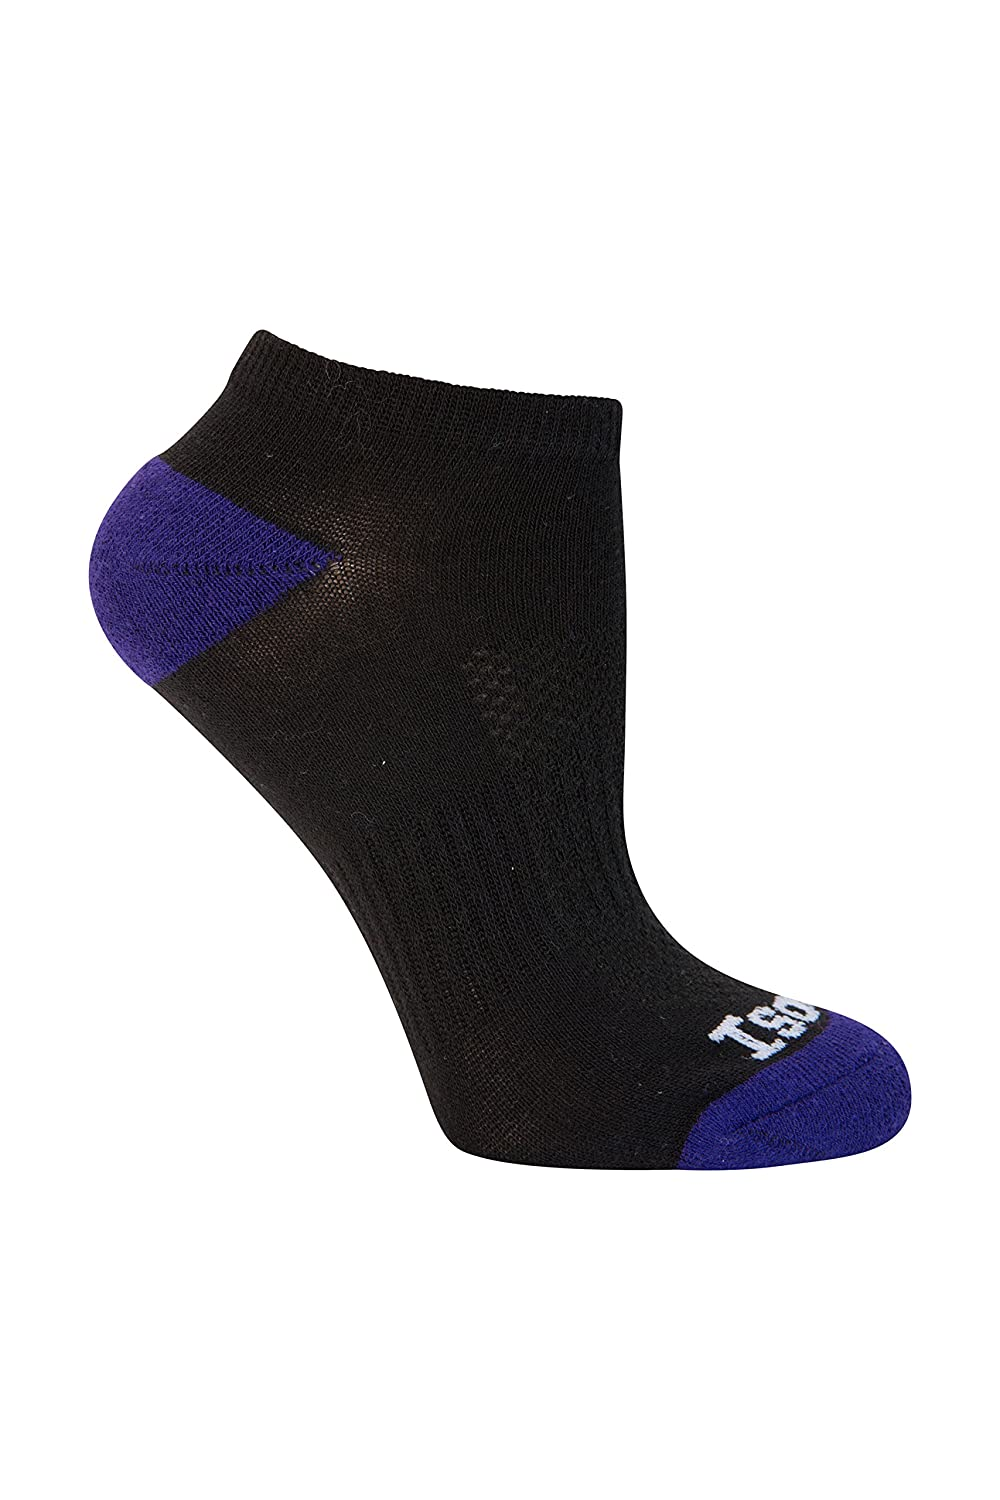 Mountain Warehouse Womens Active Socks with Isocool Polyester to Keep Feet Cool